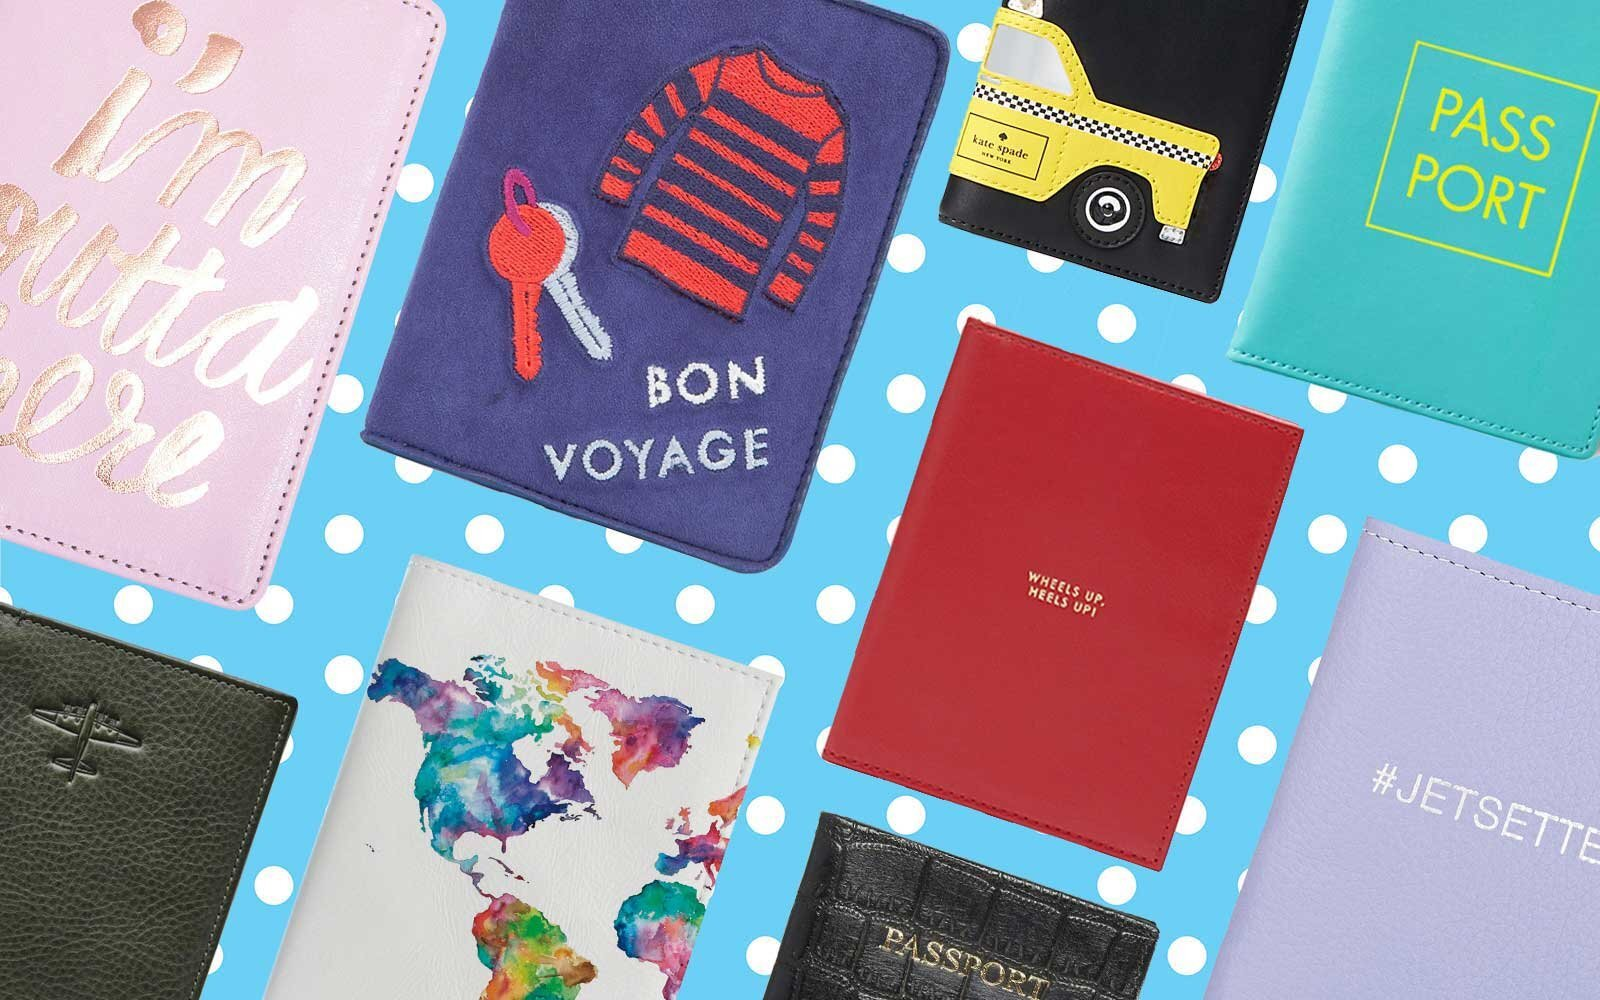 cea663d32da2 11 Cute Passport Covers for Clearing Customs in Style | Travel + Leisure